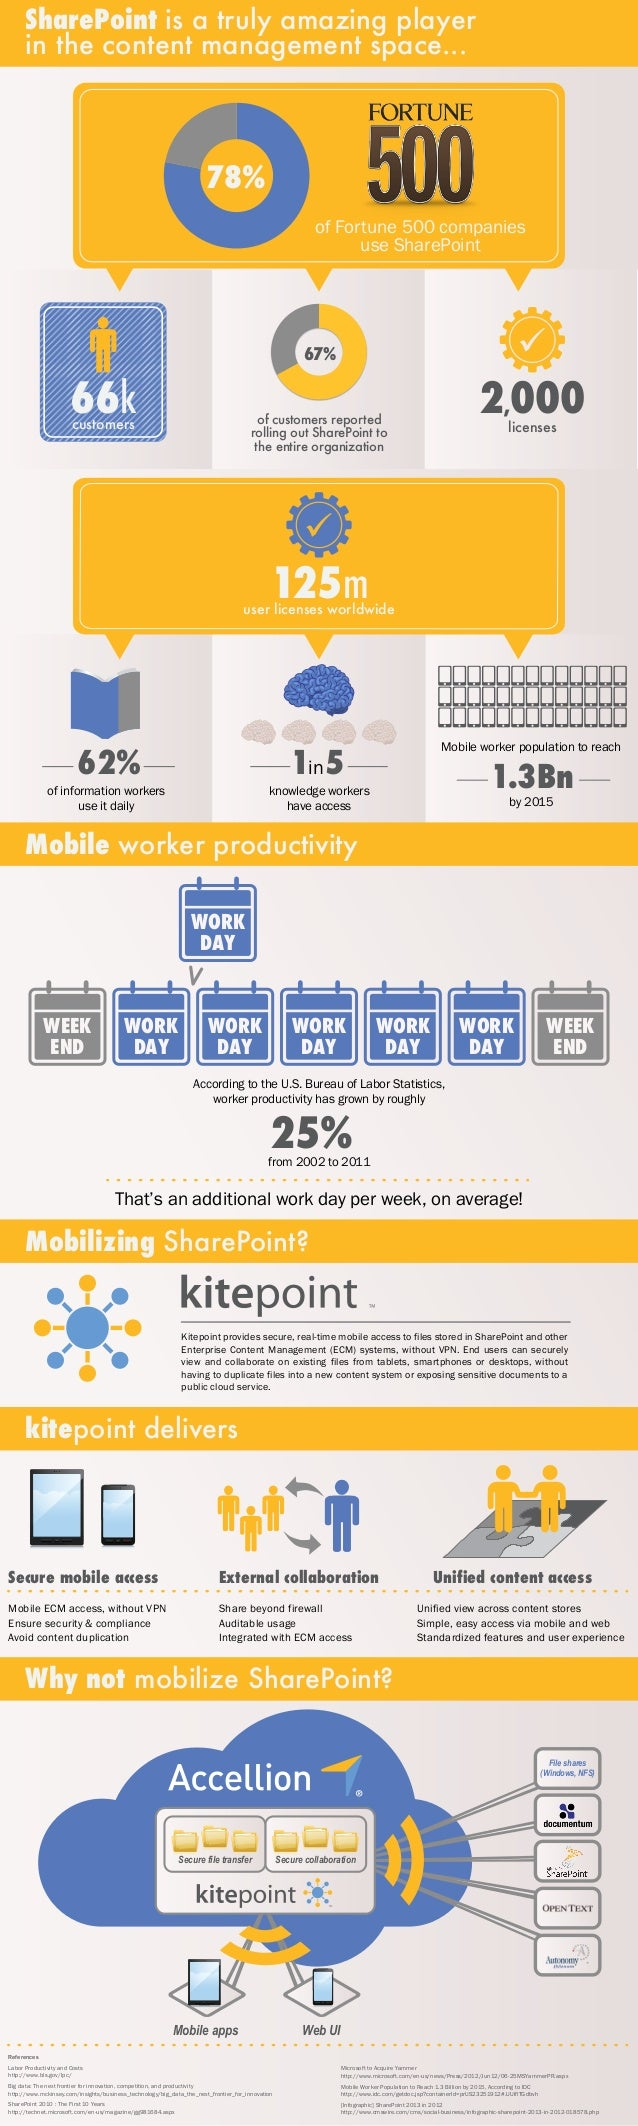 Accellion infographic-kitepoint